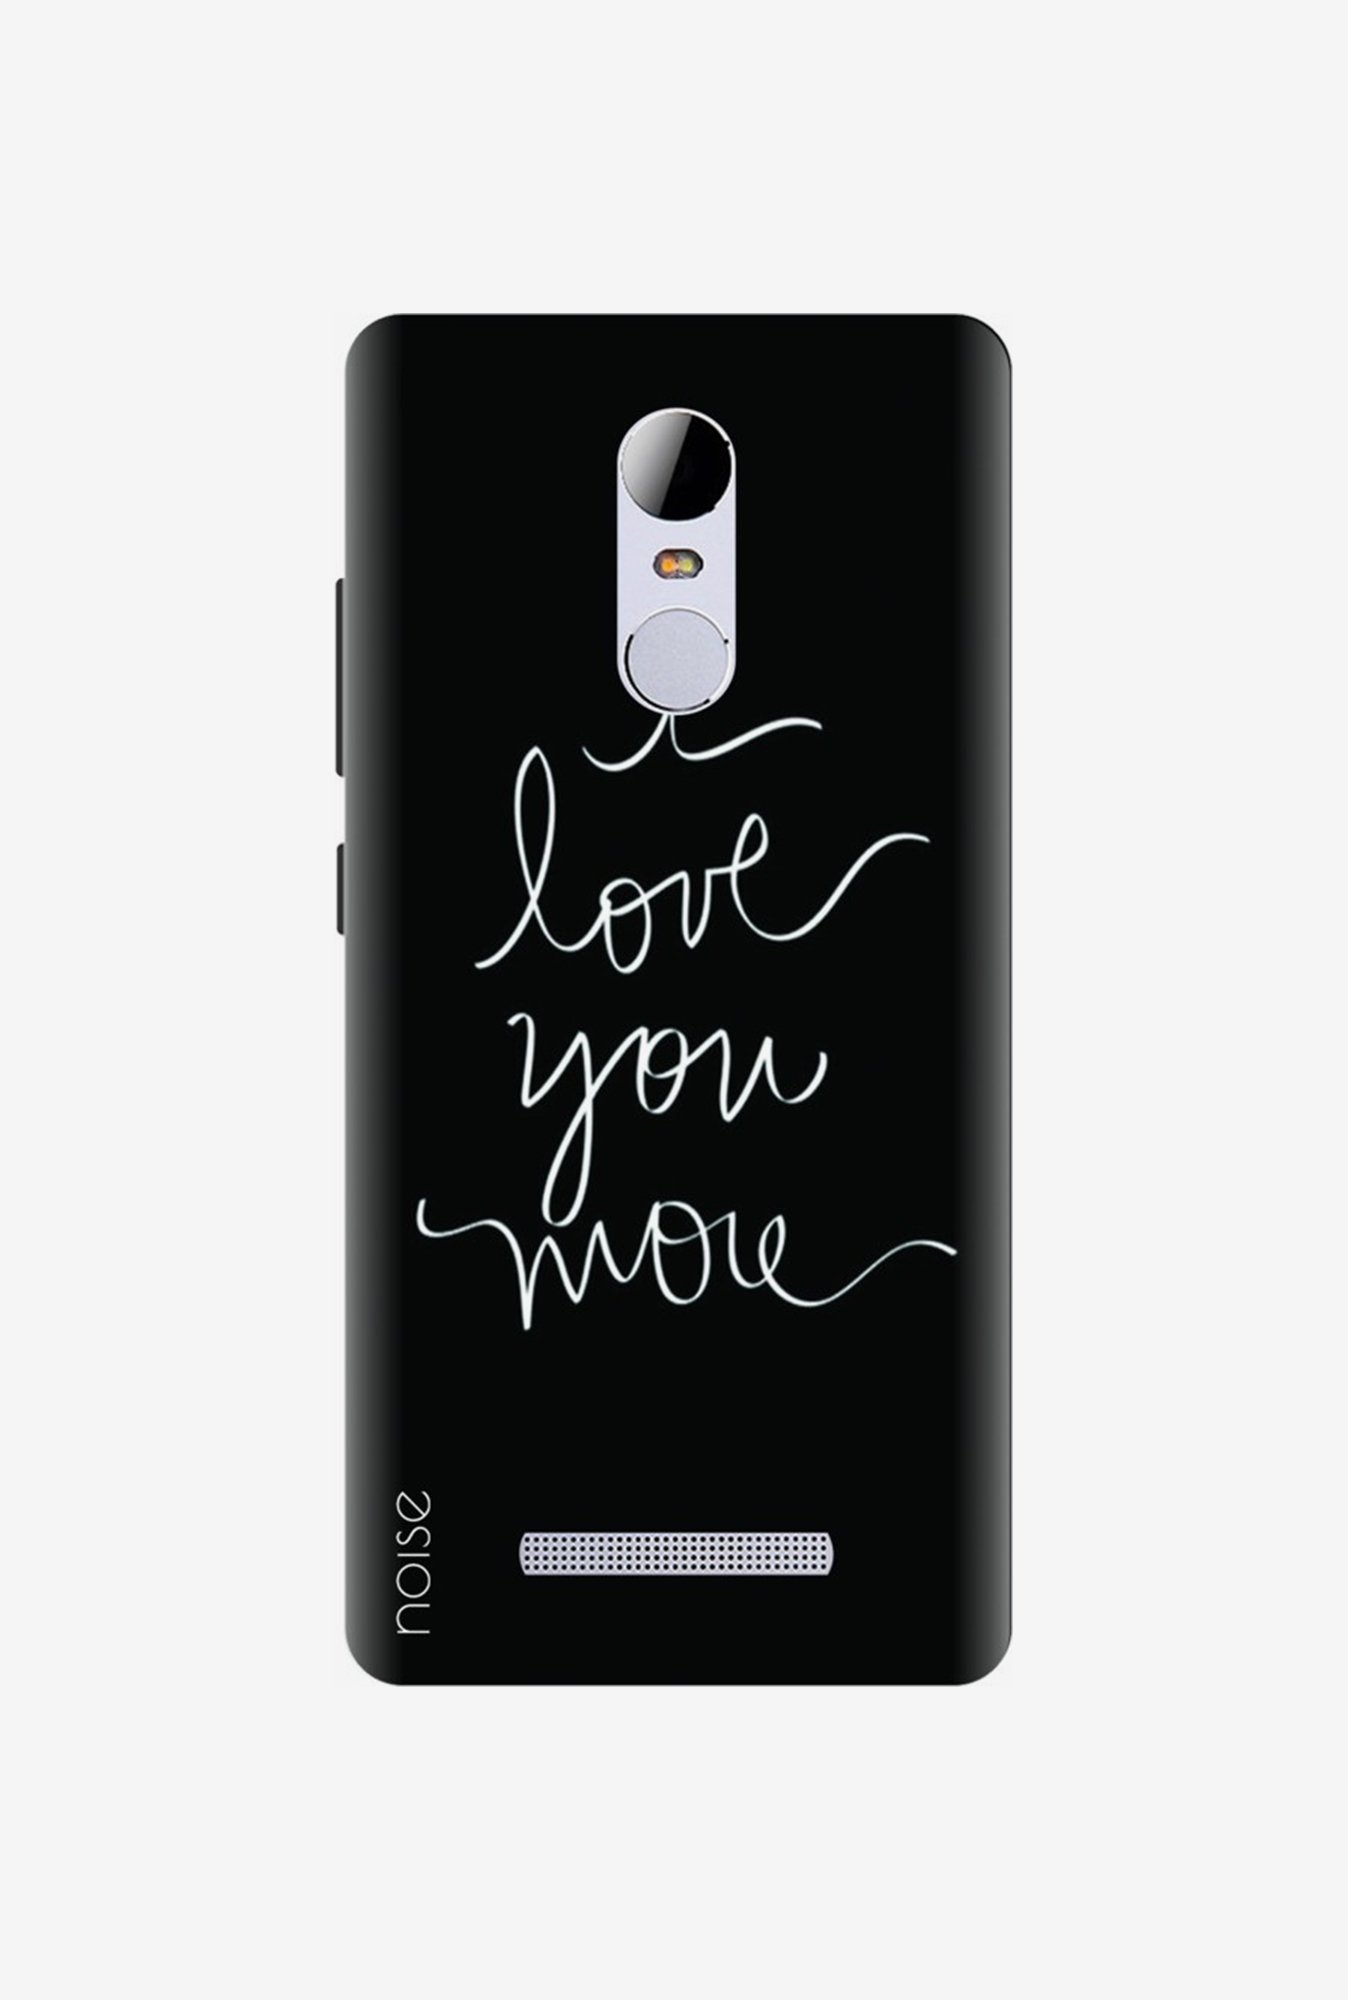 Noise VD-22-UV Back Case for Xiaomi Redmi Note 3 (Black)